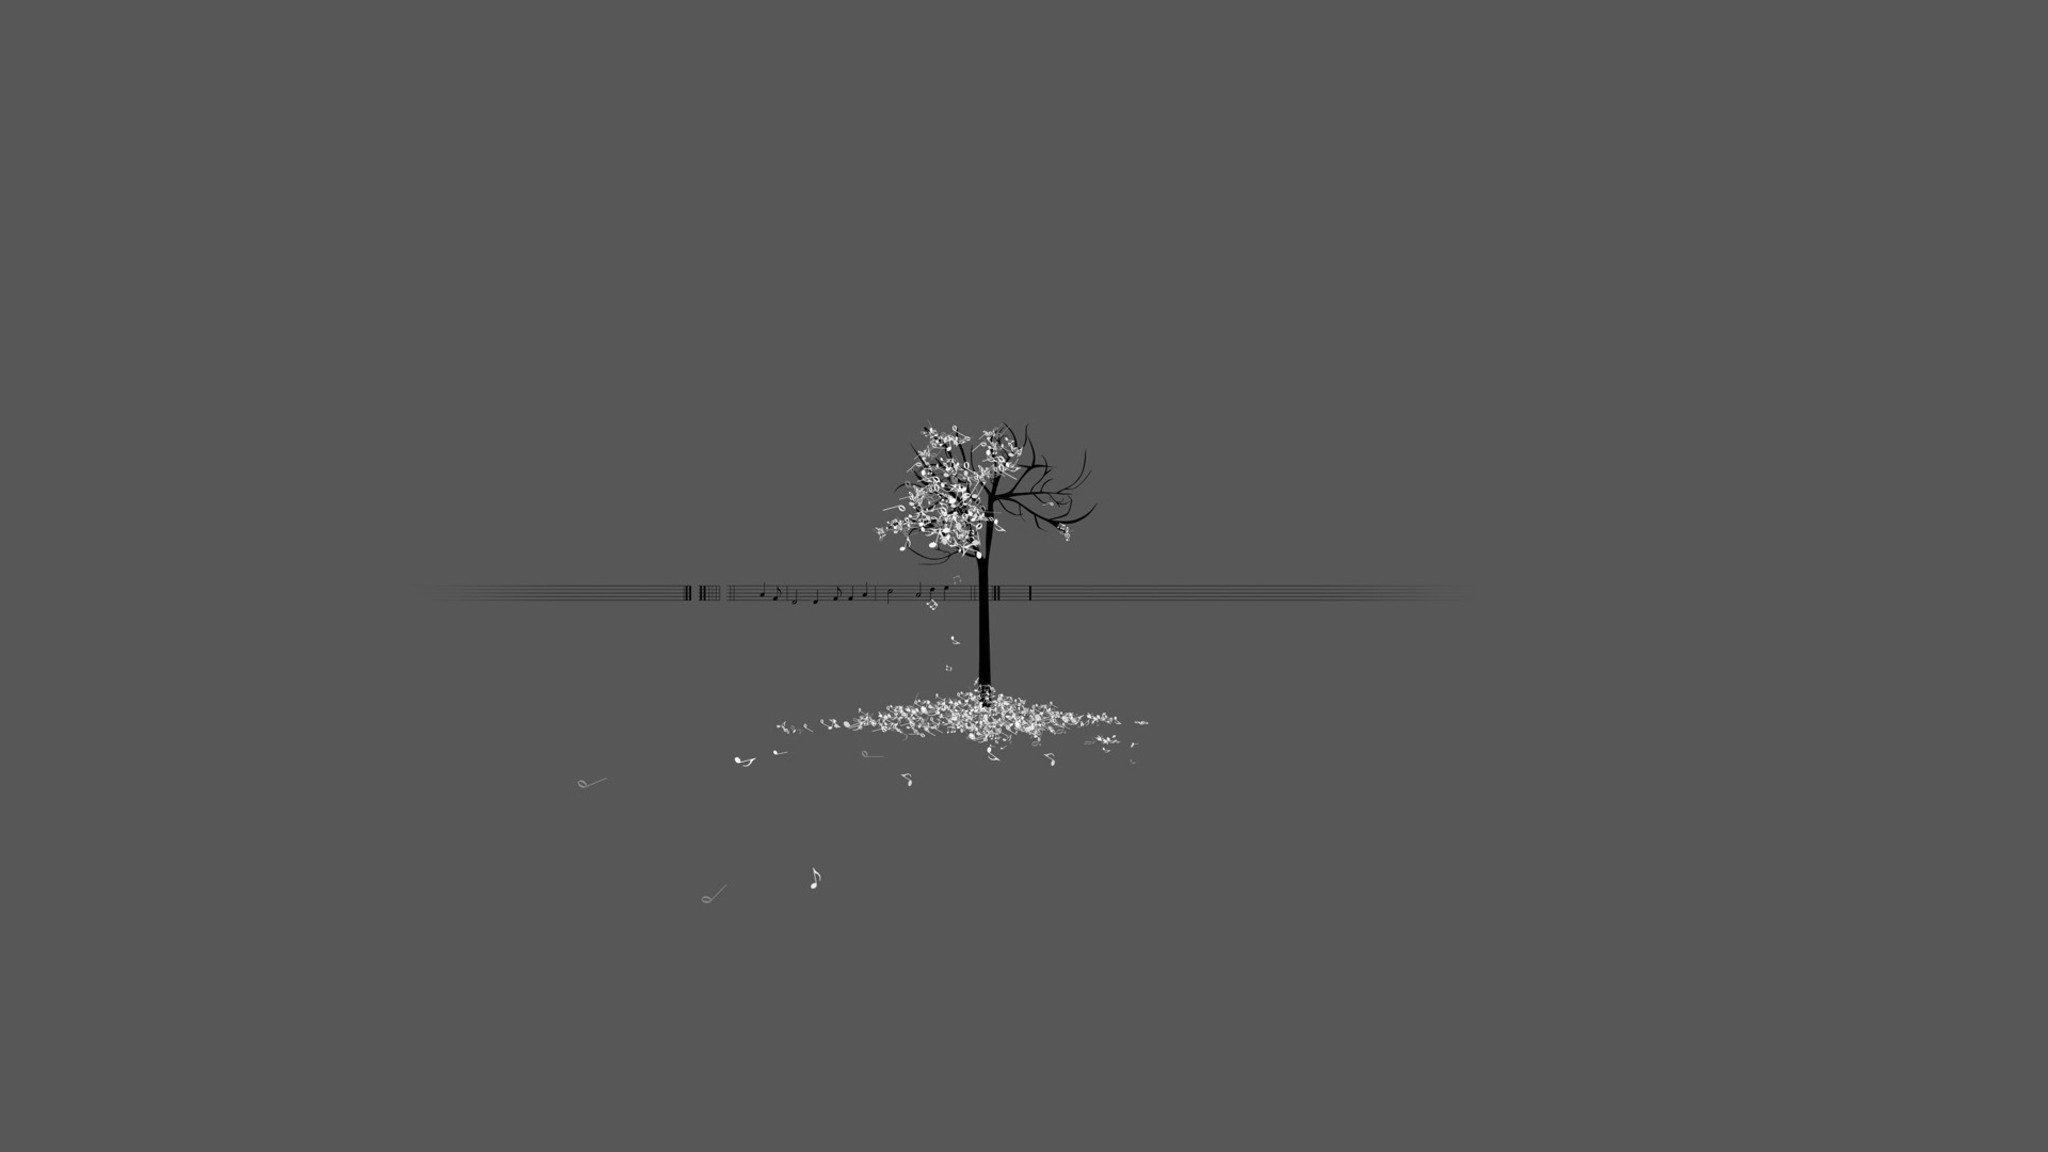 Minimalistic Trees Musical Gray Background Wallpaper